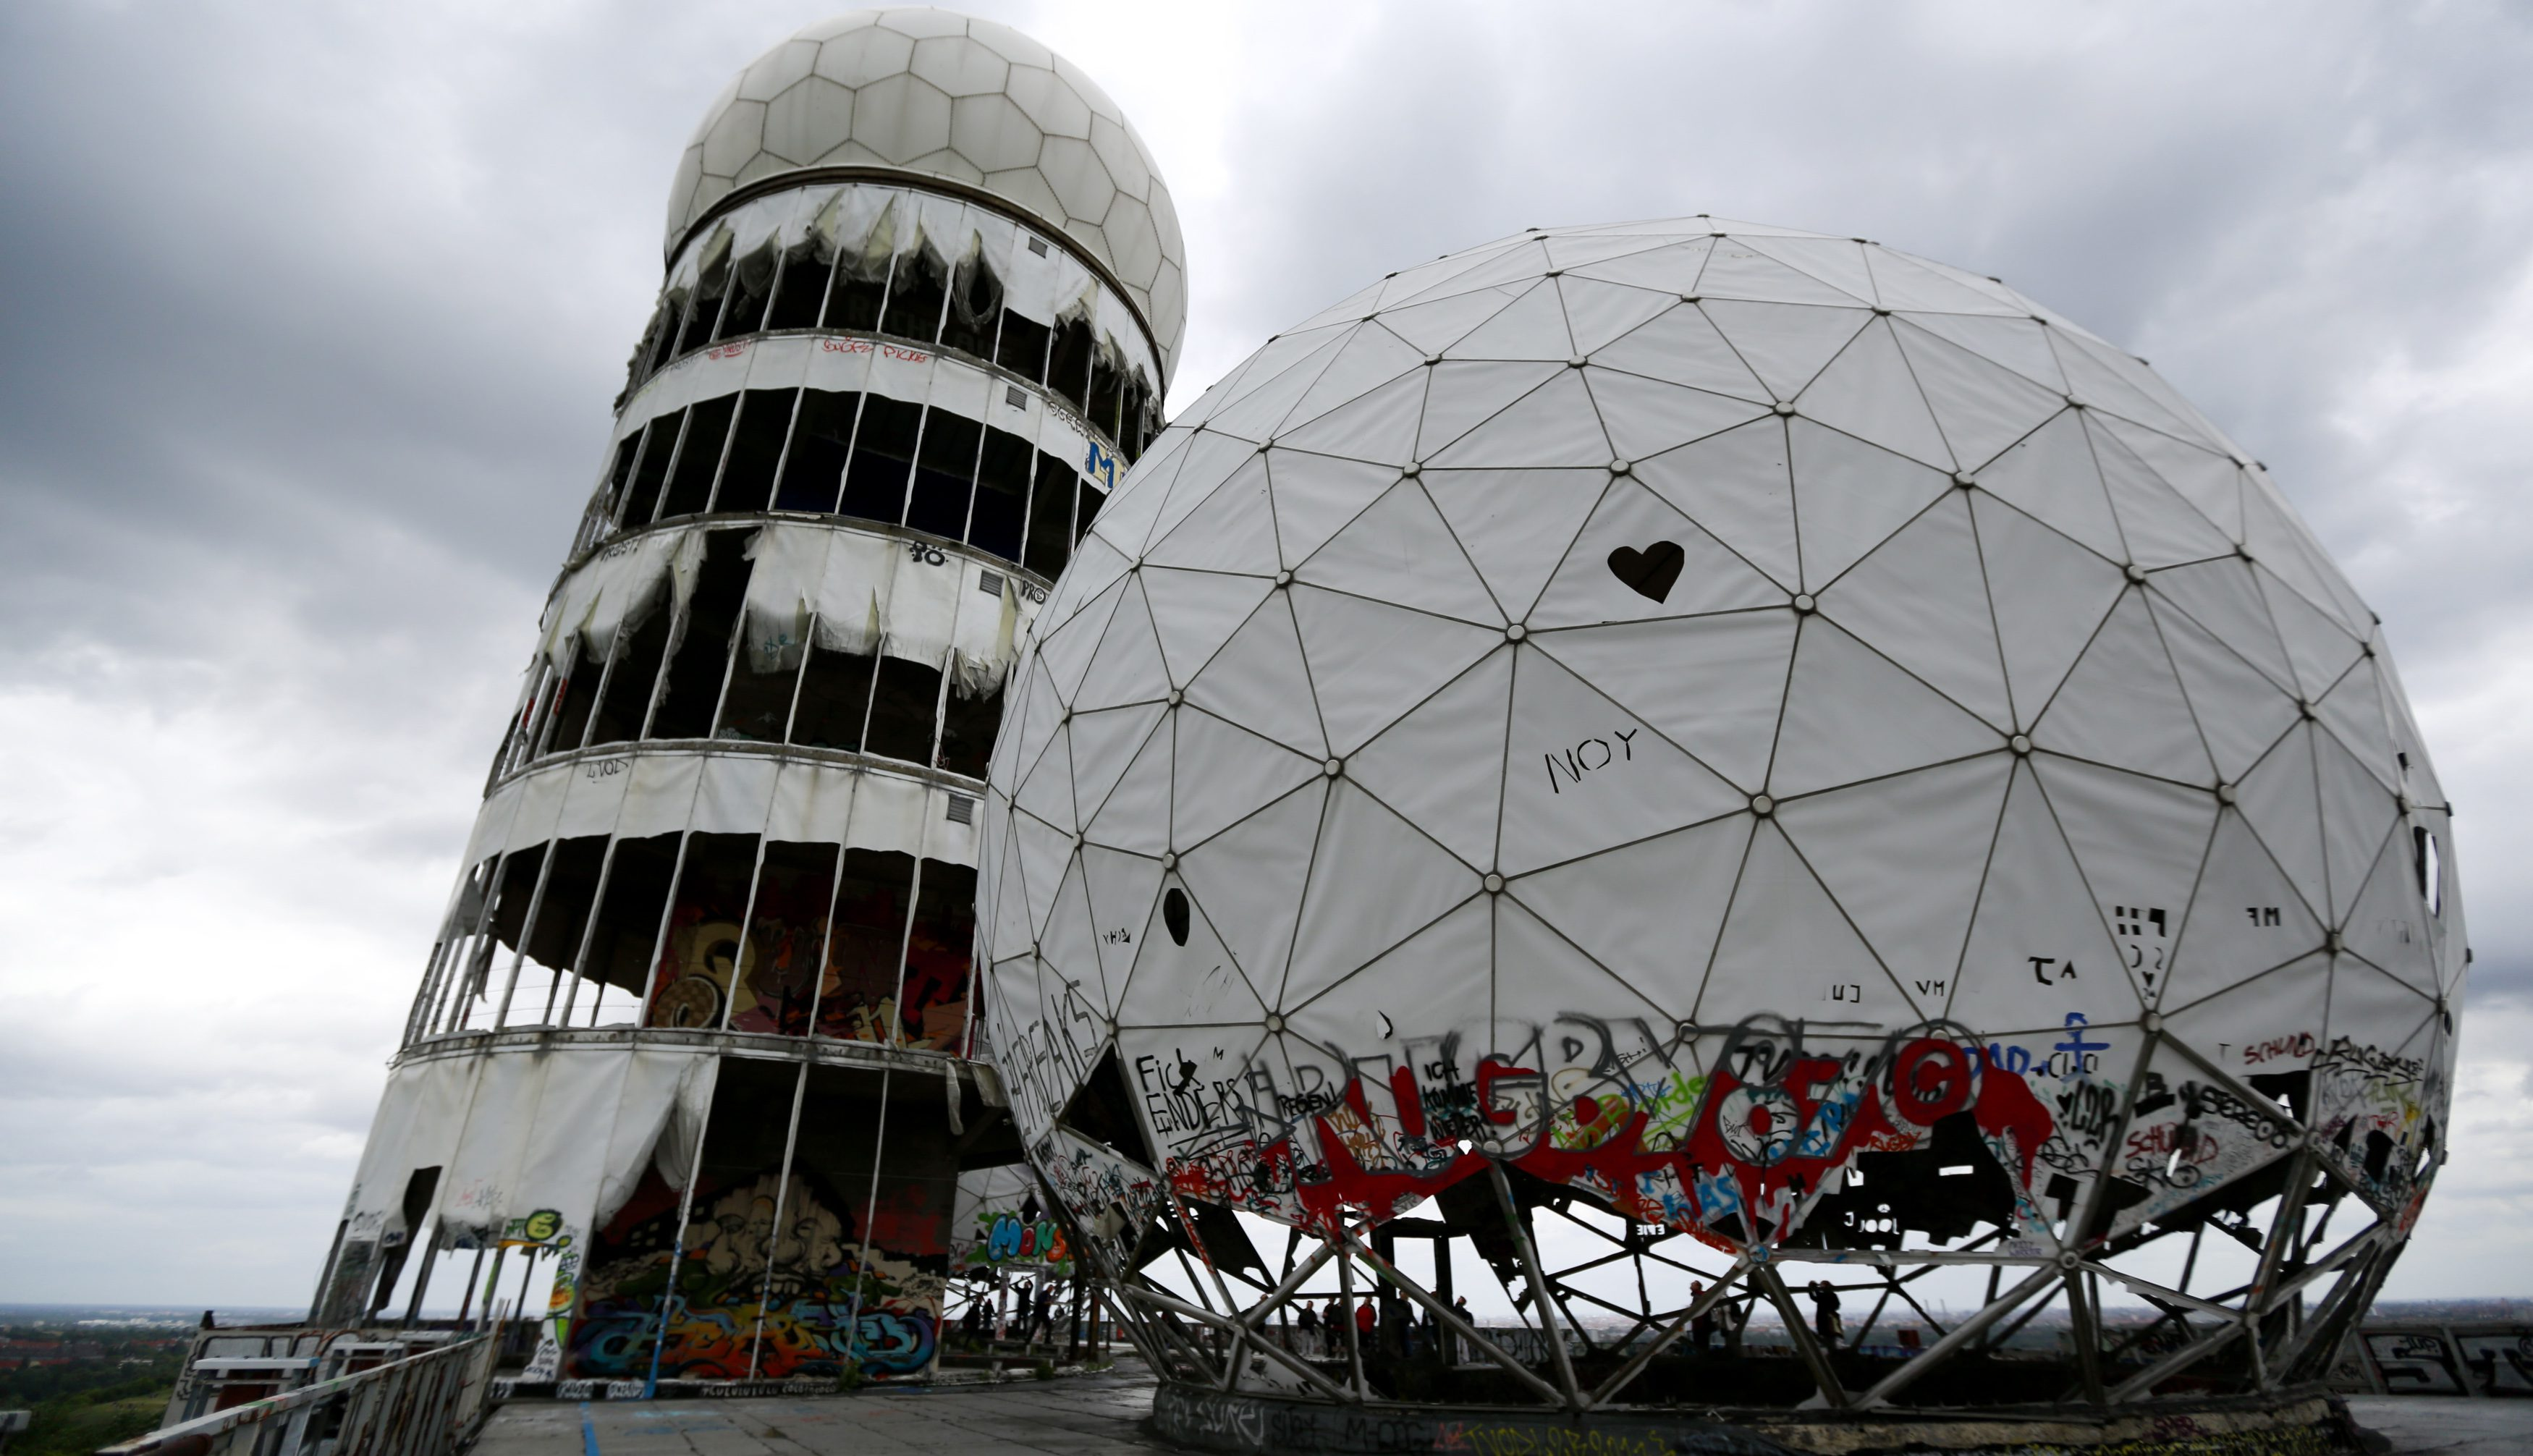 Broken antenna covers of Former National Security Agency (NSA) listening station are seen at the Teufelsberg hill (German for Devil's Mountain) in Berlin